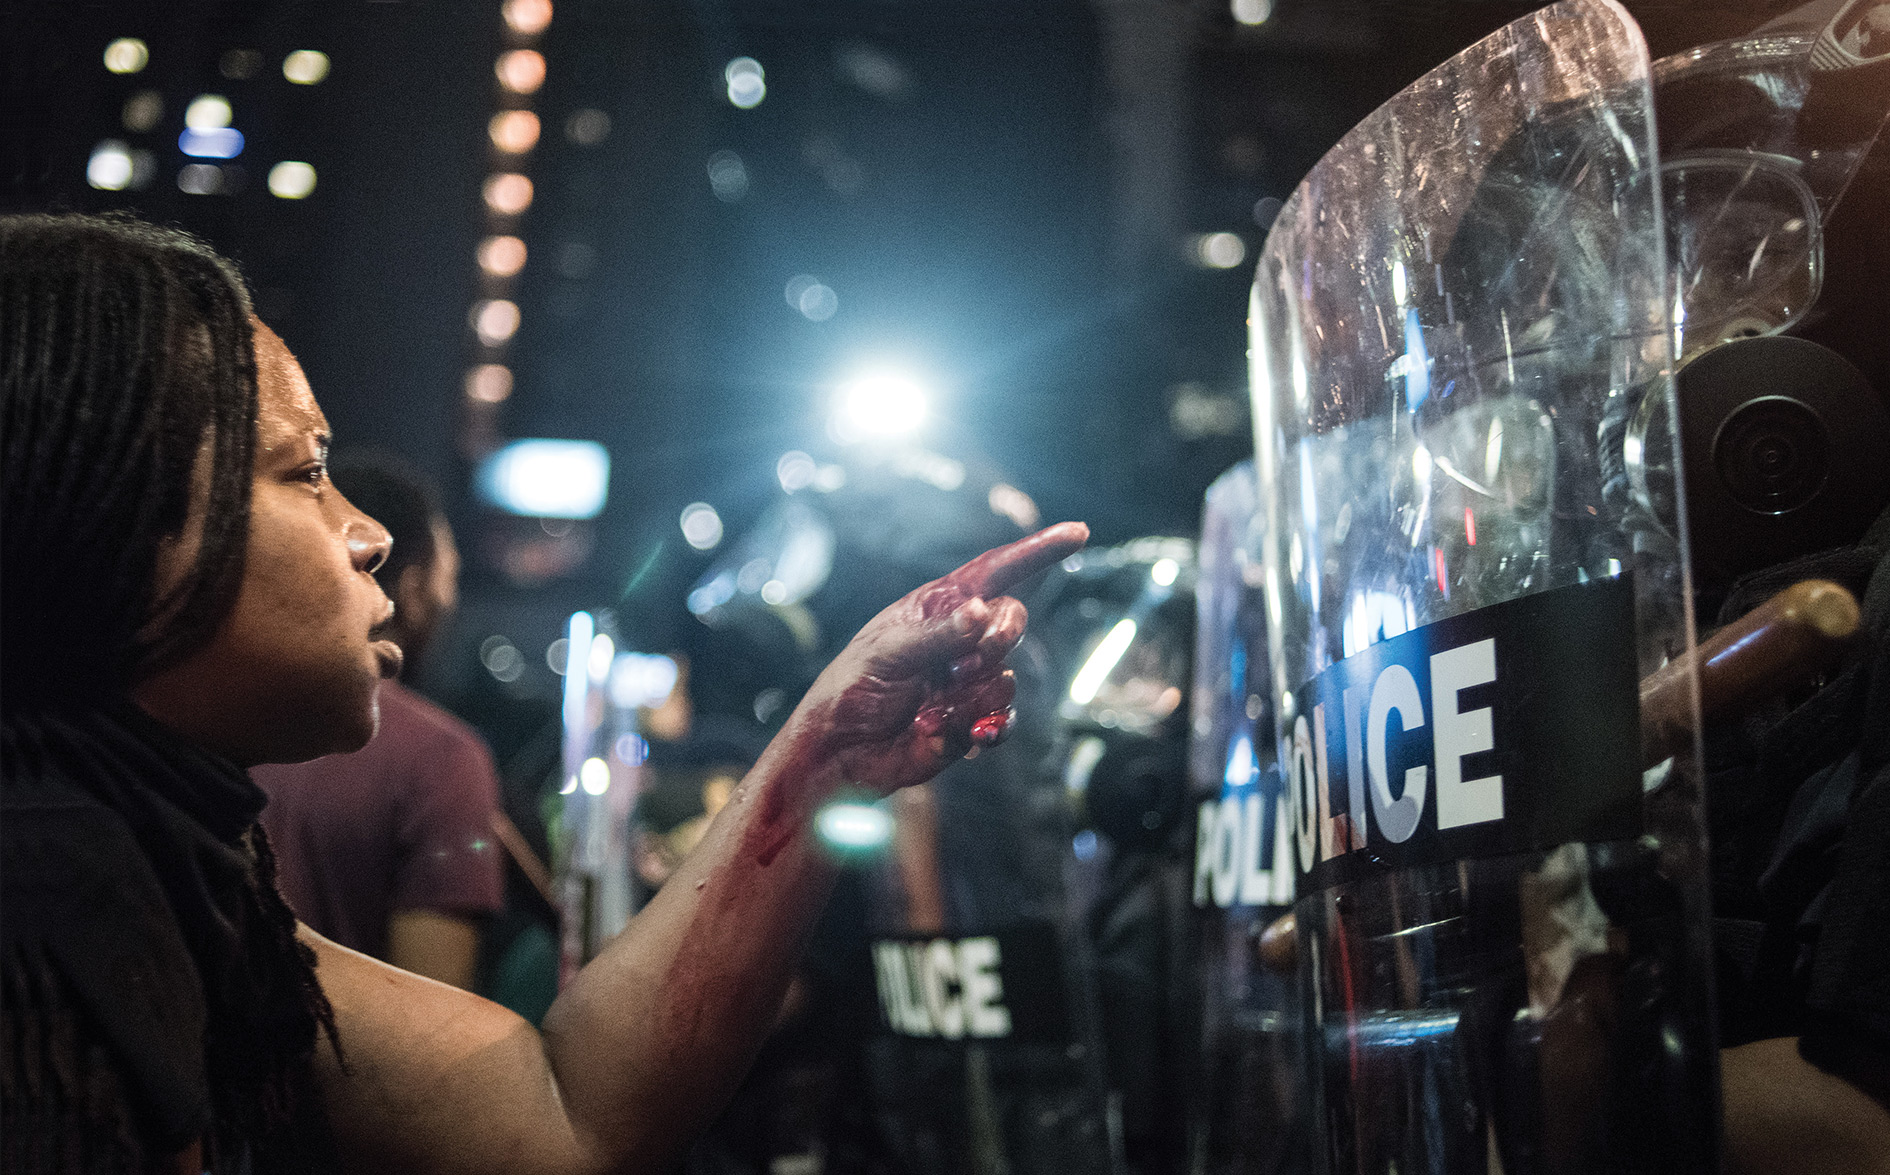 J'accuse: protests and riots rage for days after Keith Lamont Scott is shot dead by police in Charlotte, North Carolina, September 2016.